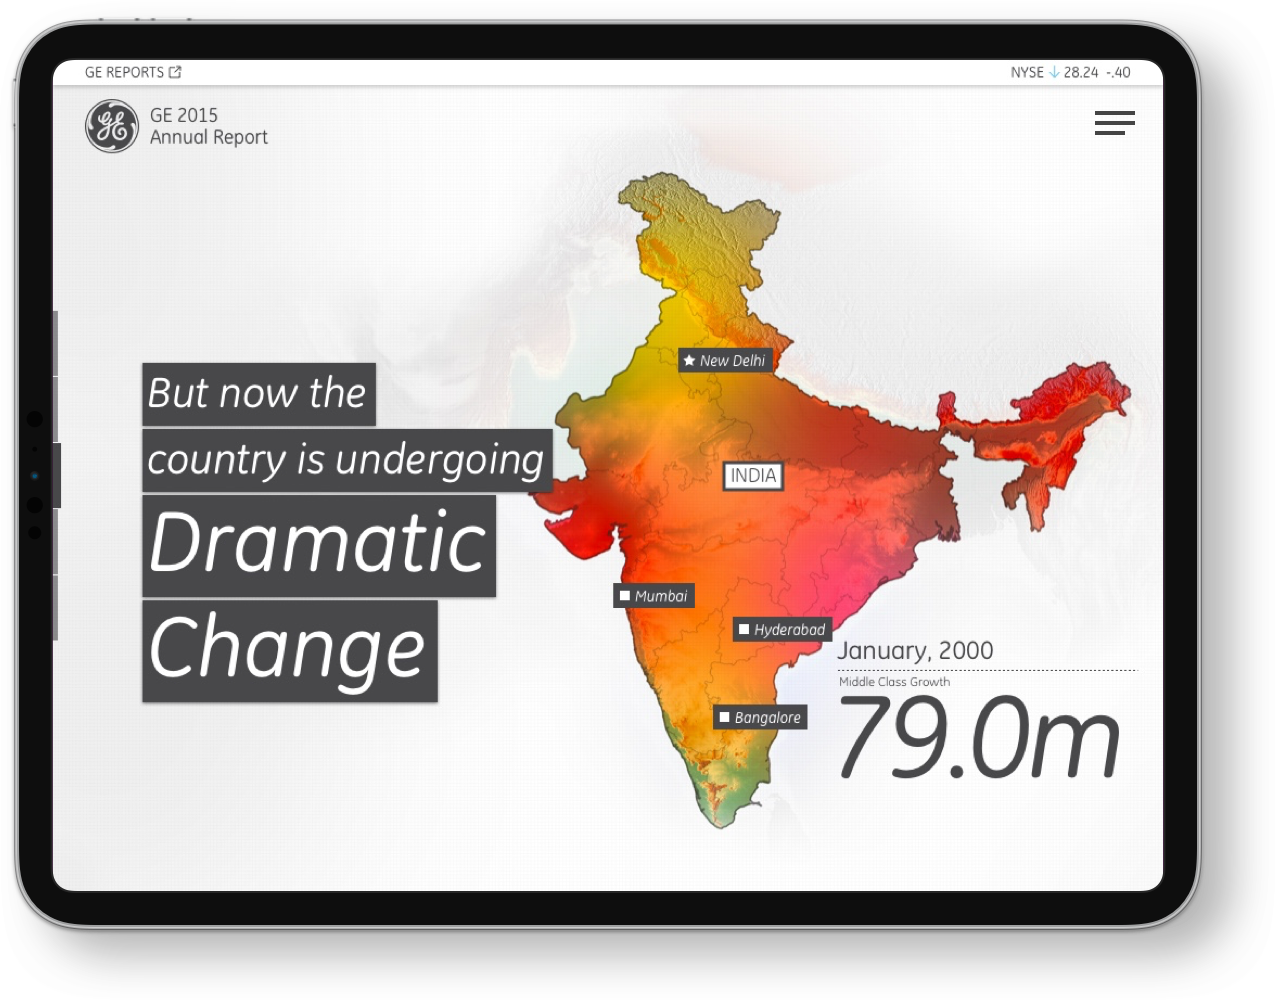 Bringing Change to India